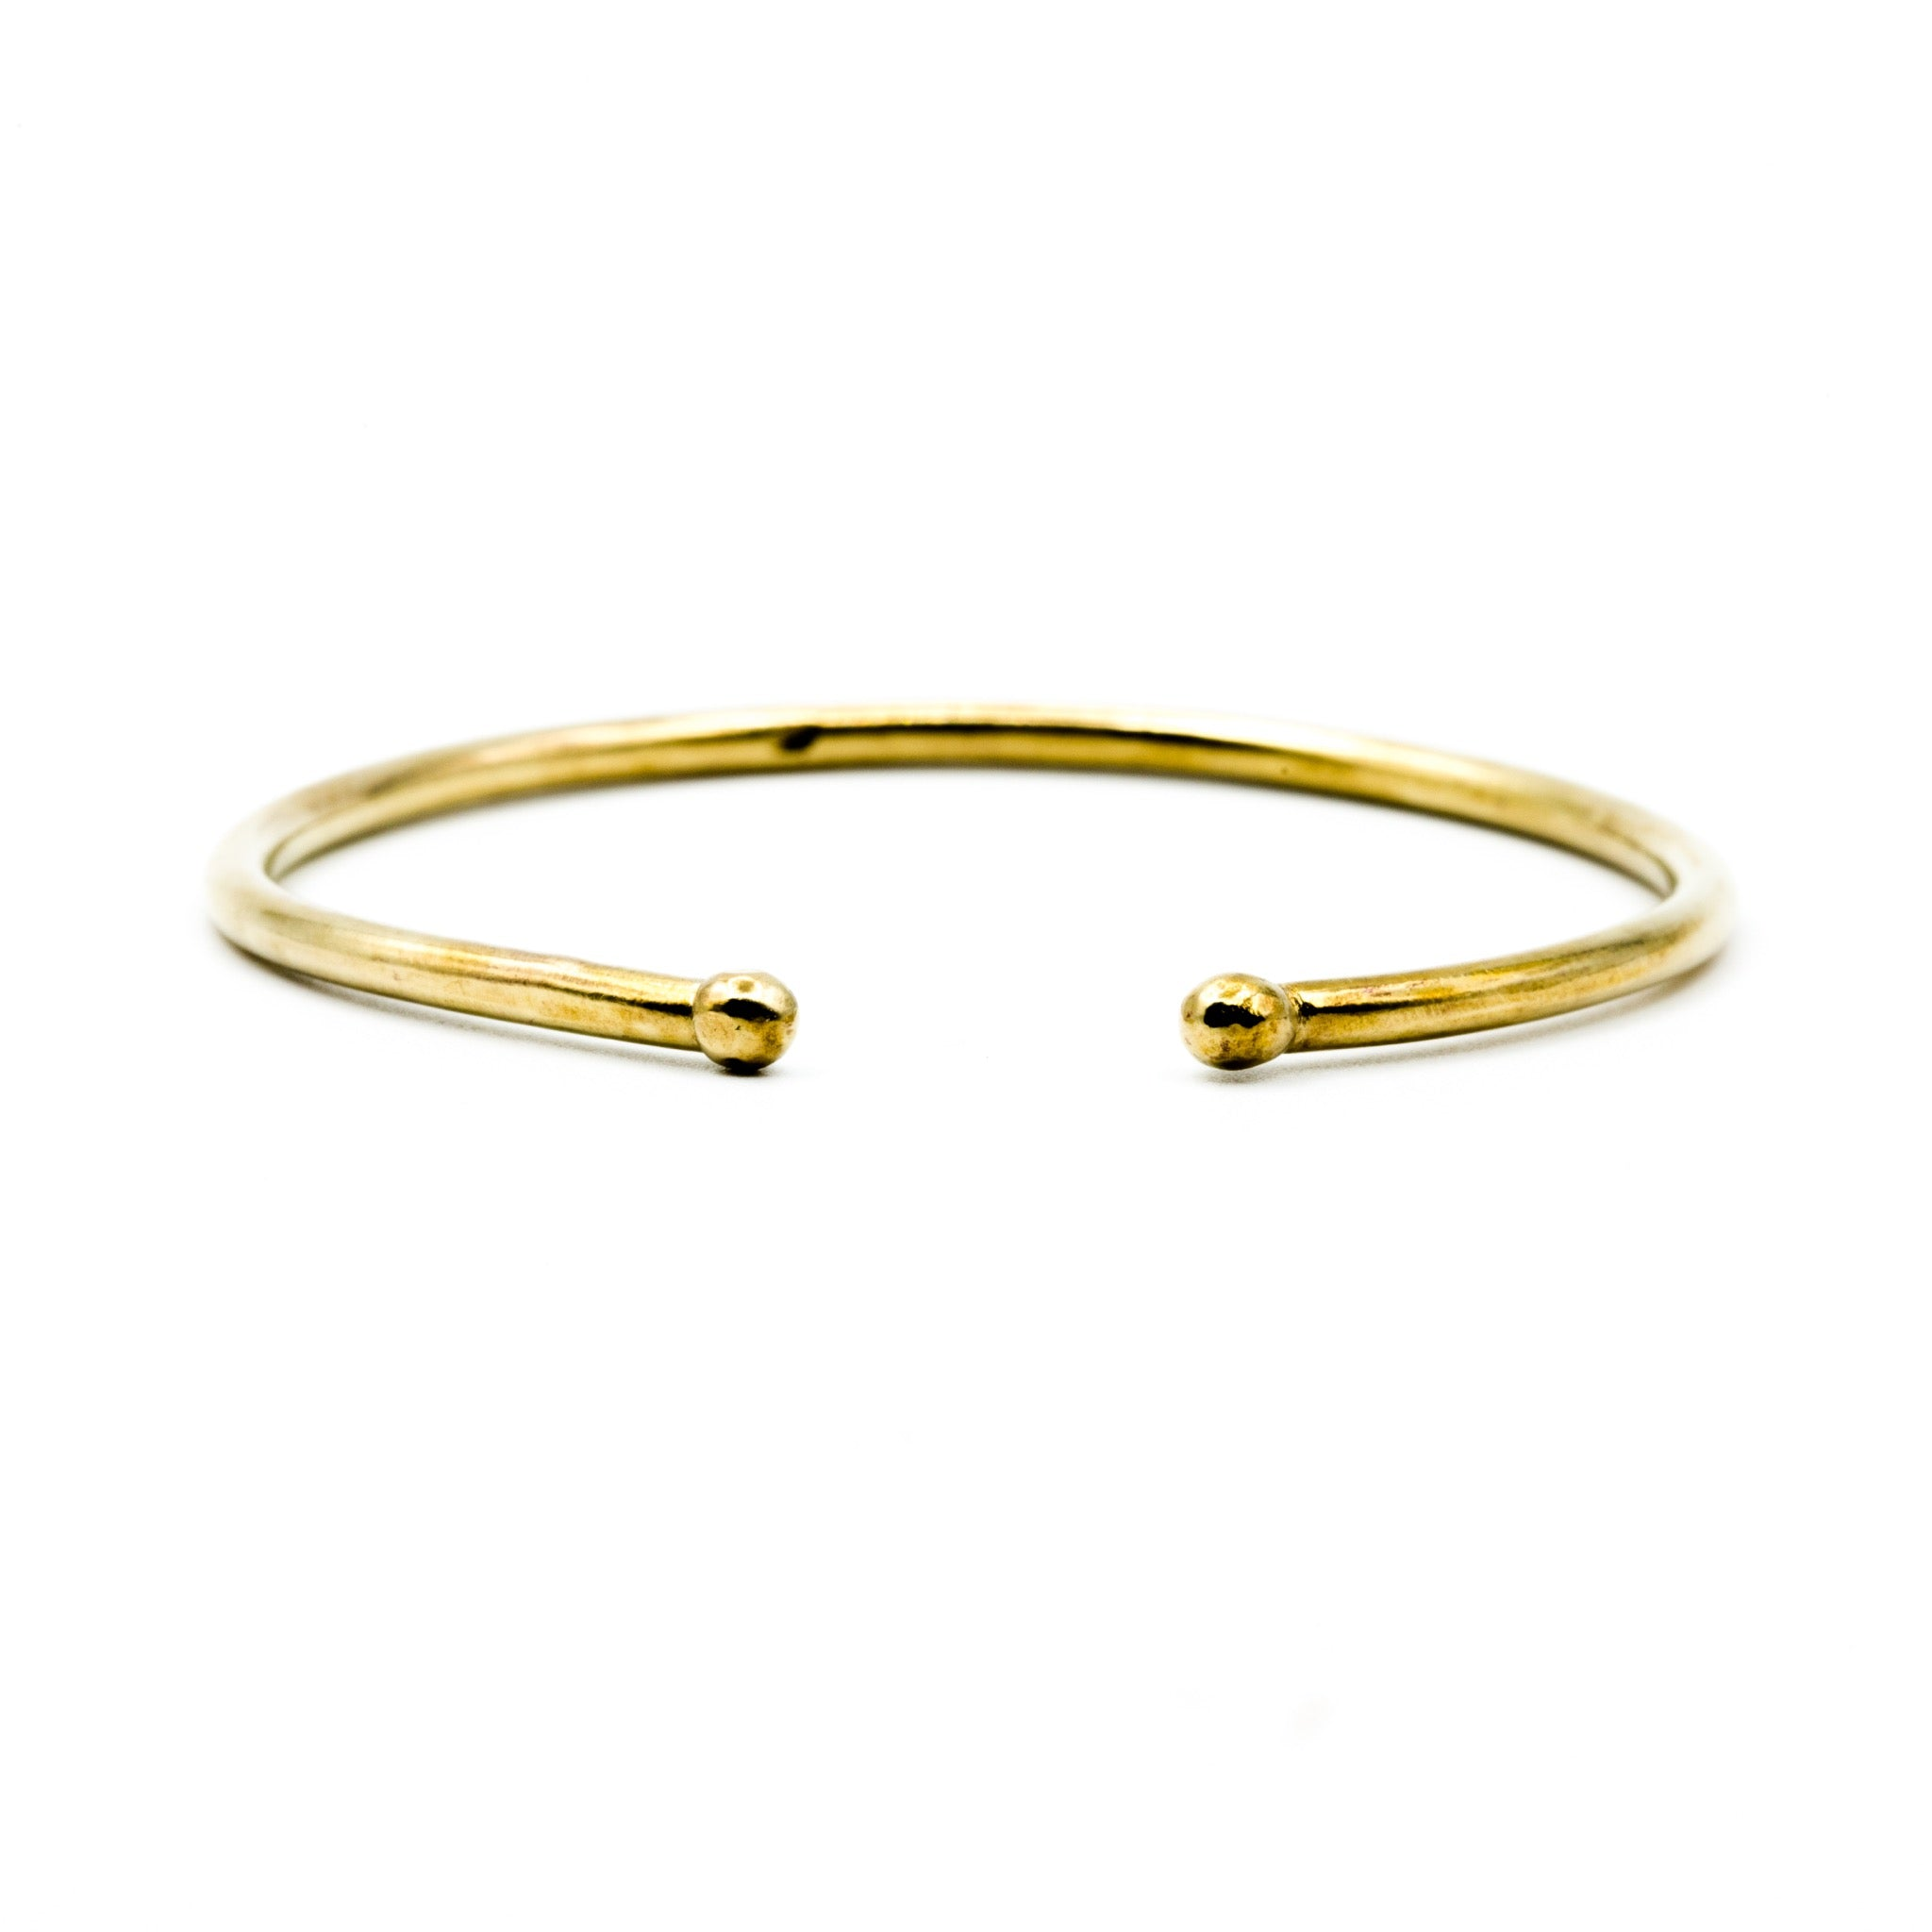 brass cuff with balled ends on white background